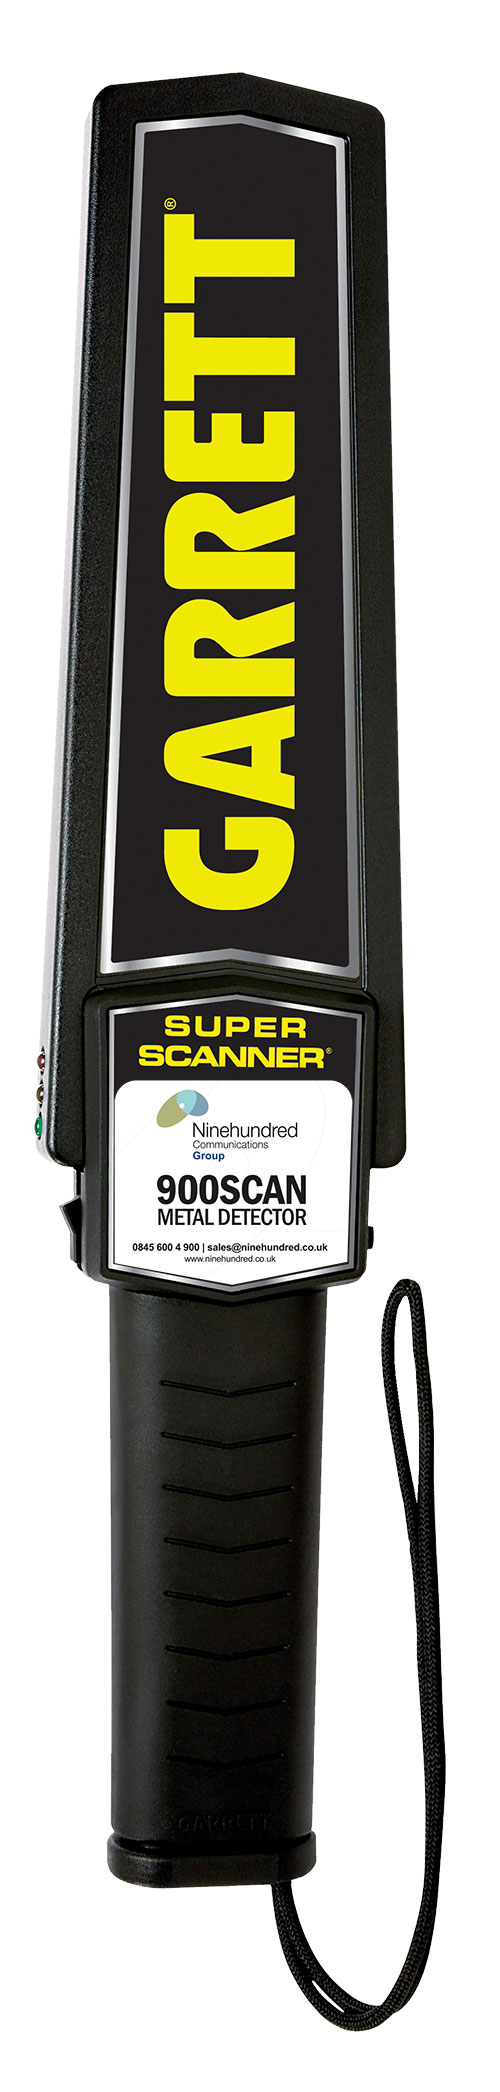 900Scan Hand-held Metal Detector Image